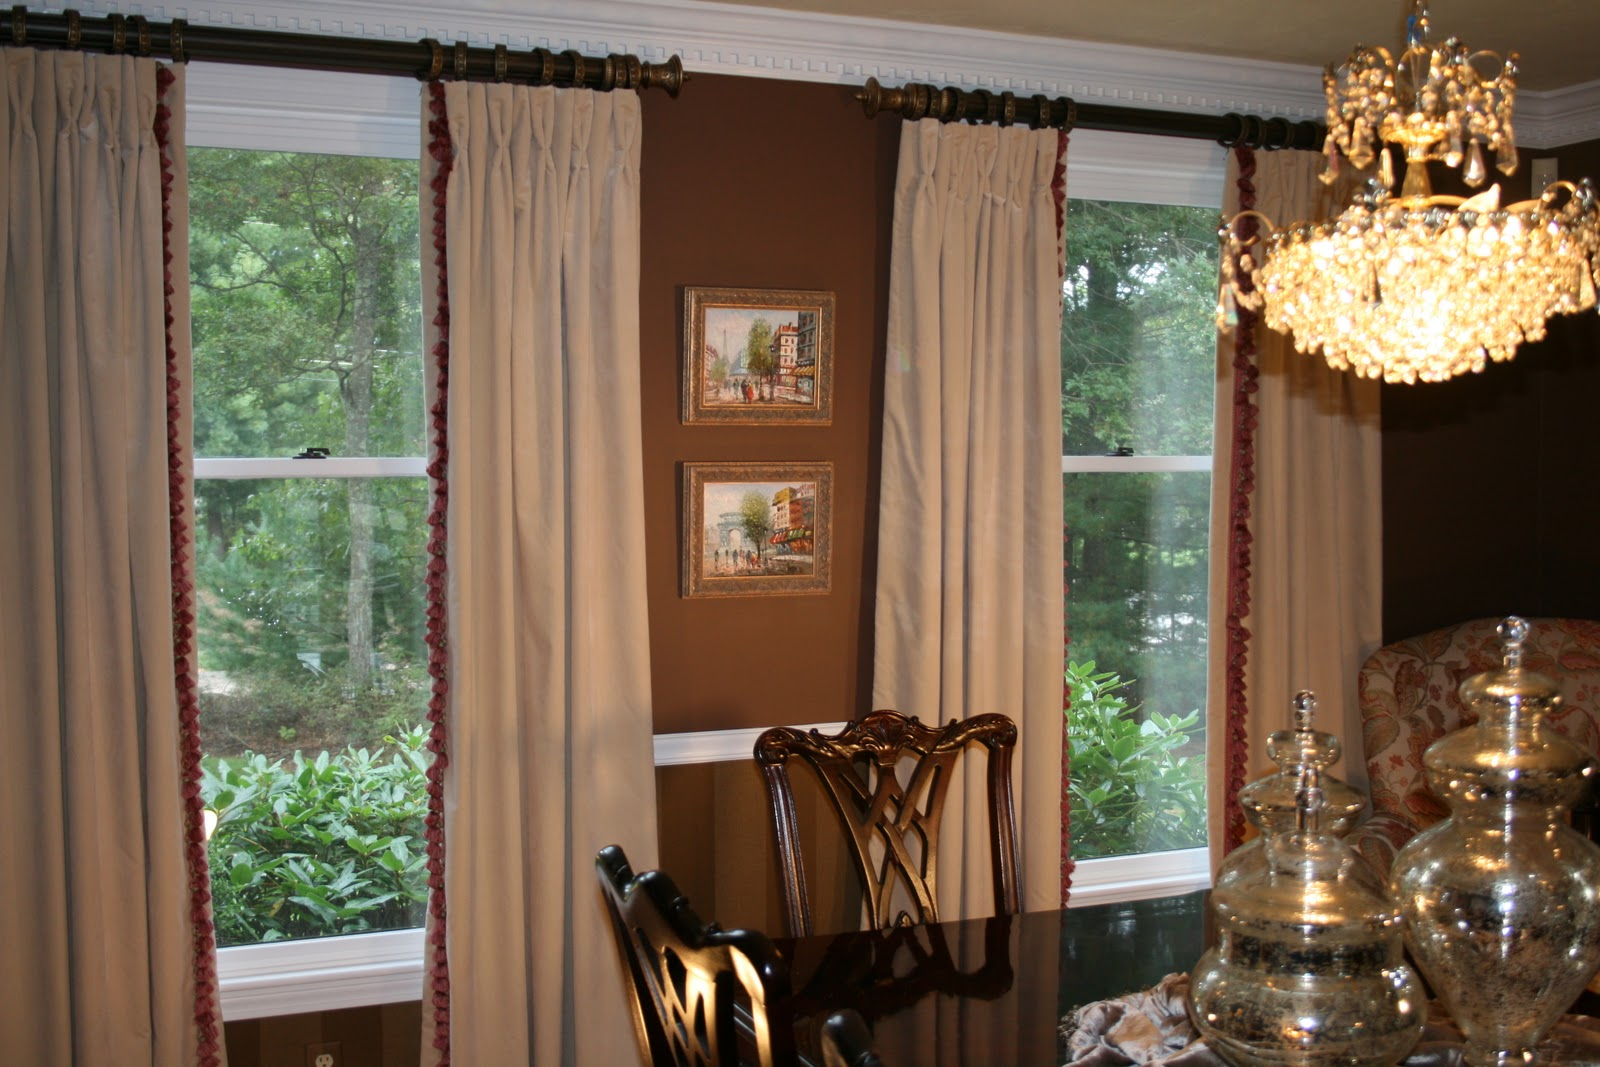 Design notes redecorating dining room window treatments 7 for Dining room window designs